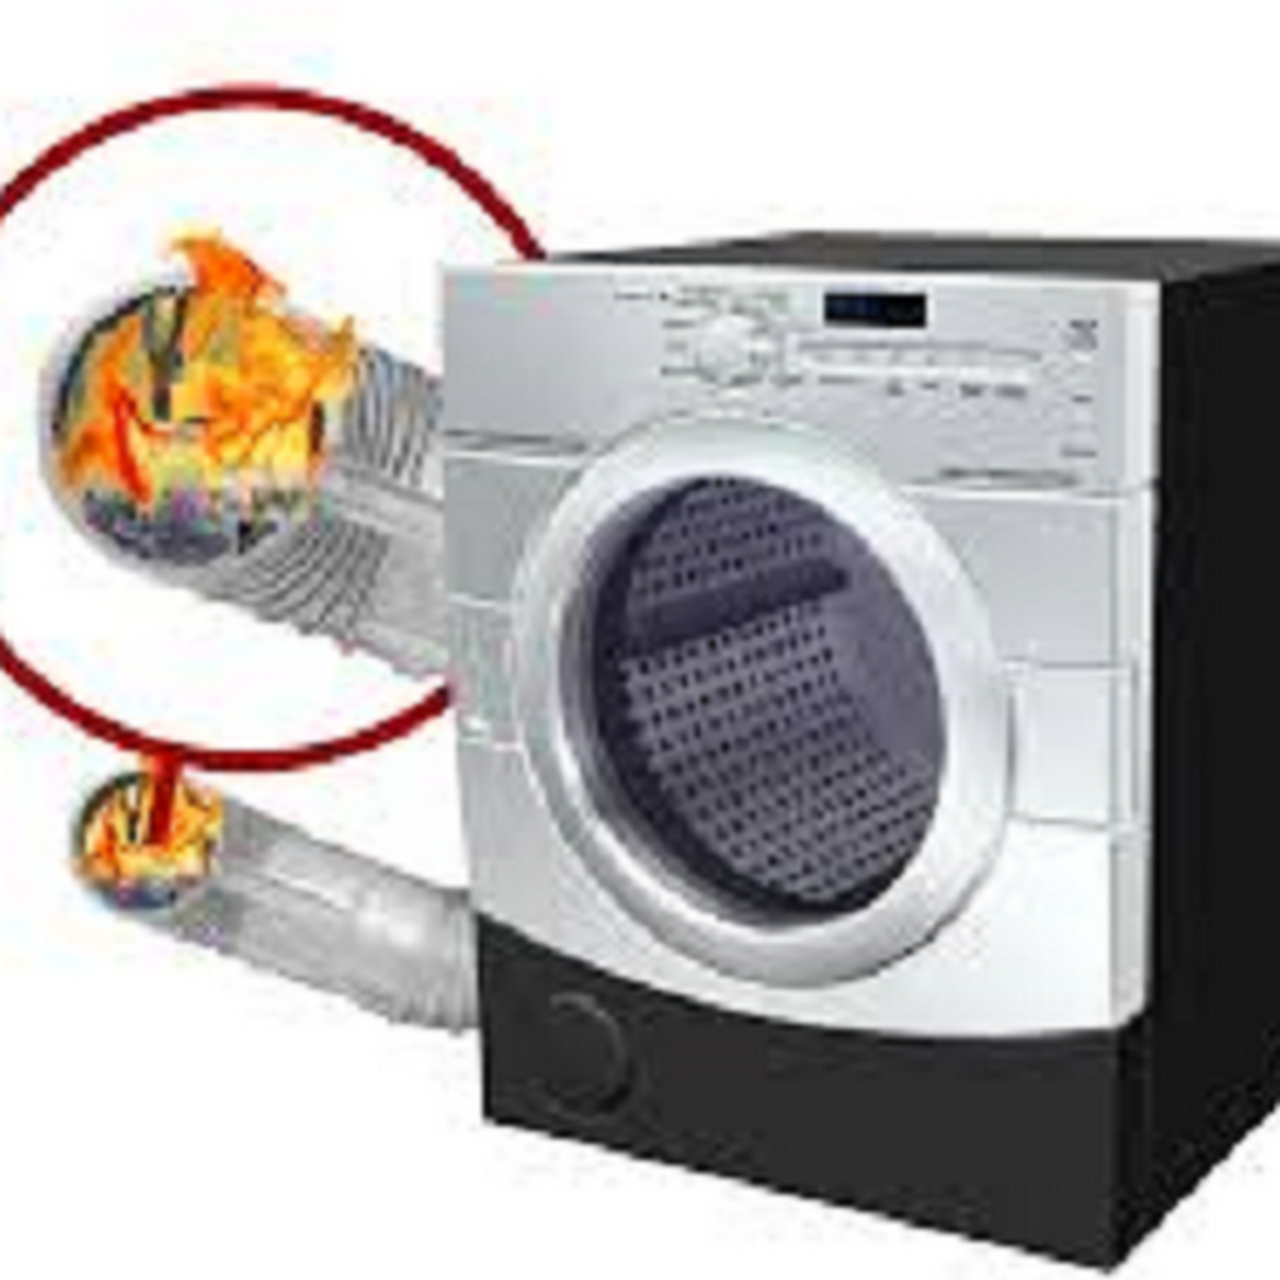 Dryer Vent Cleaning Amp Washer Repair Services Broward